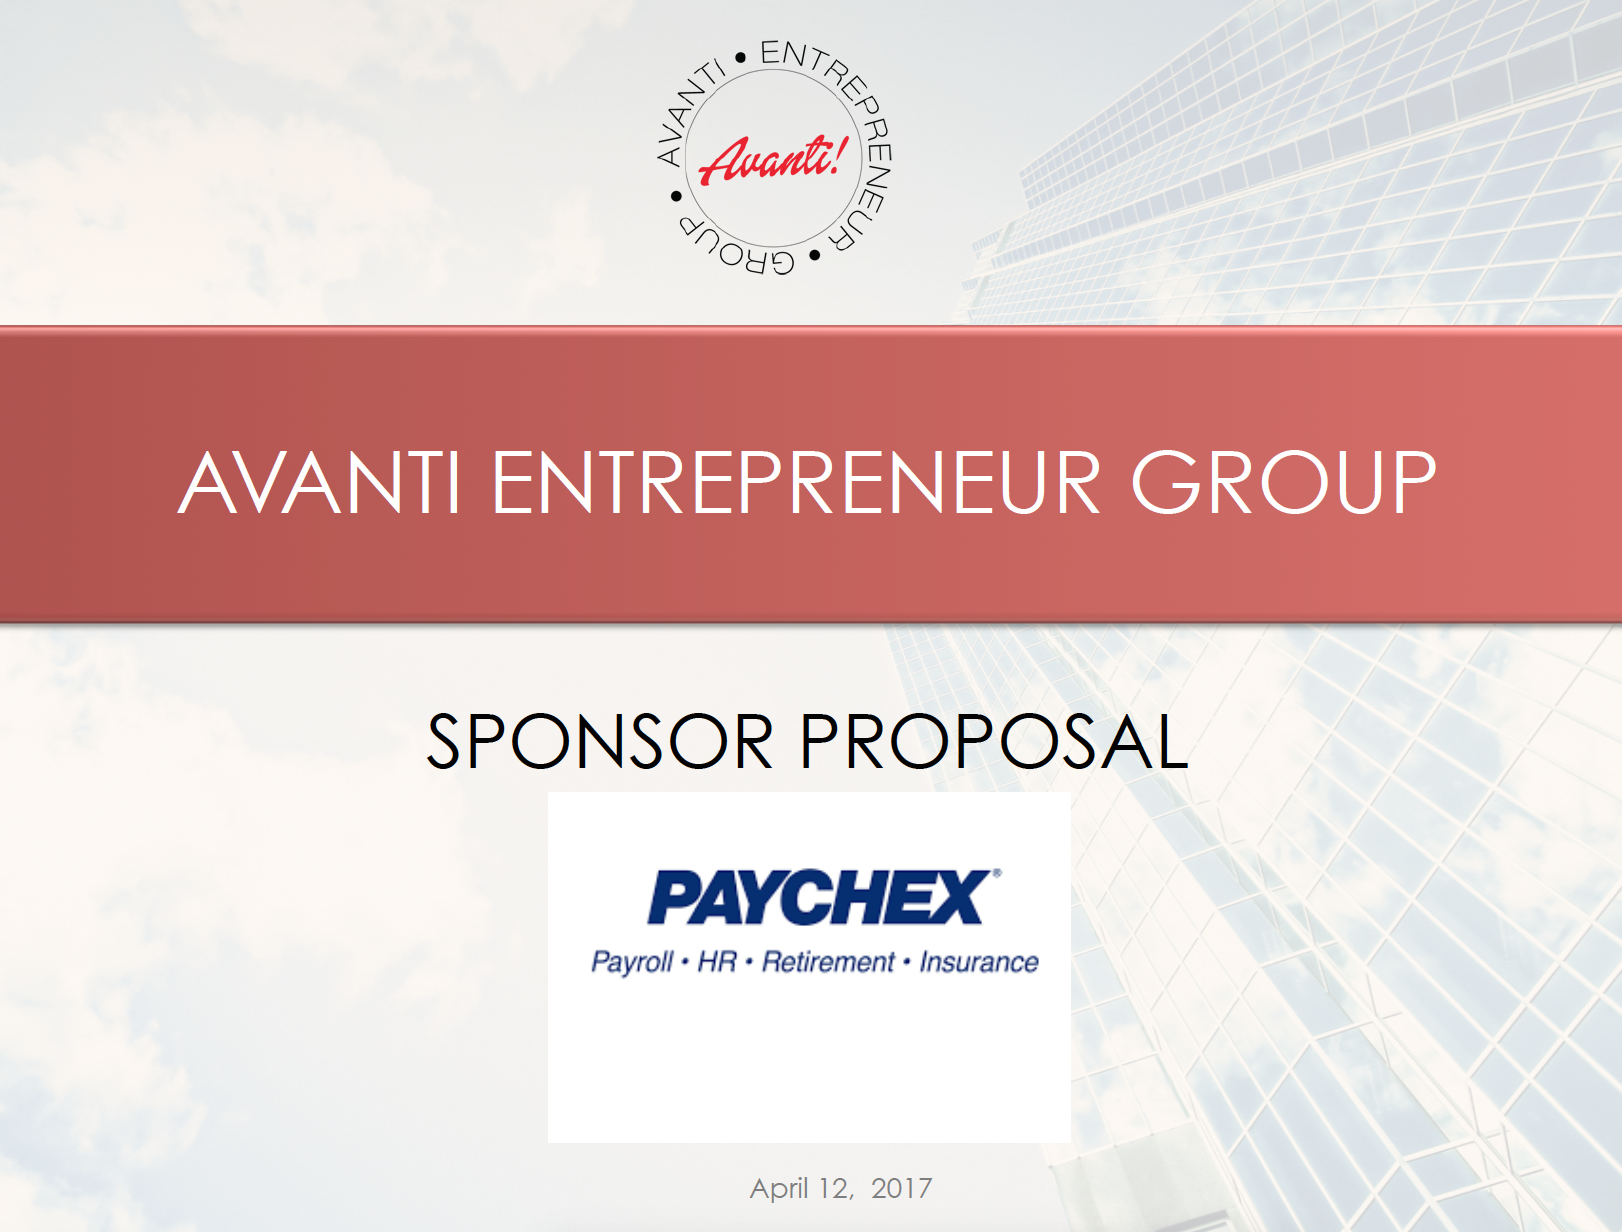 Avanti Entrepreneur Group: Sponsor Proposal